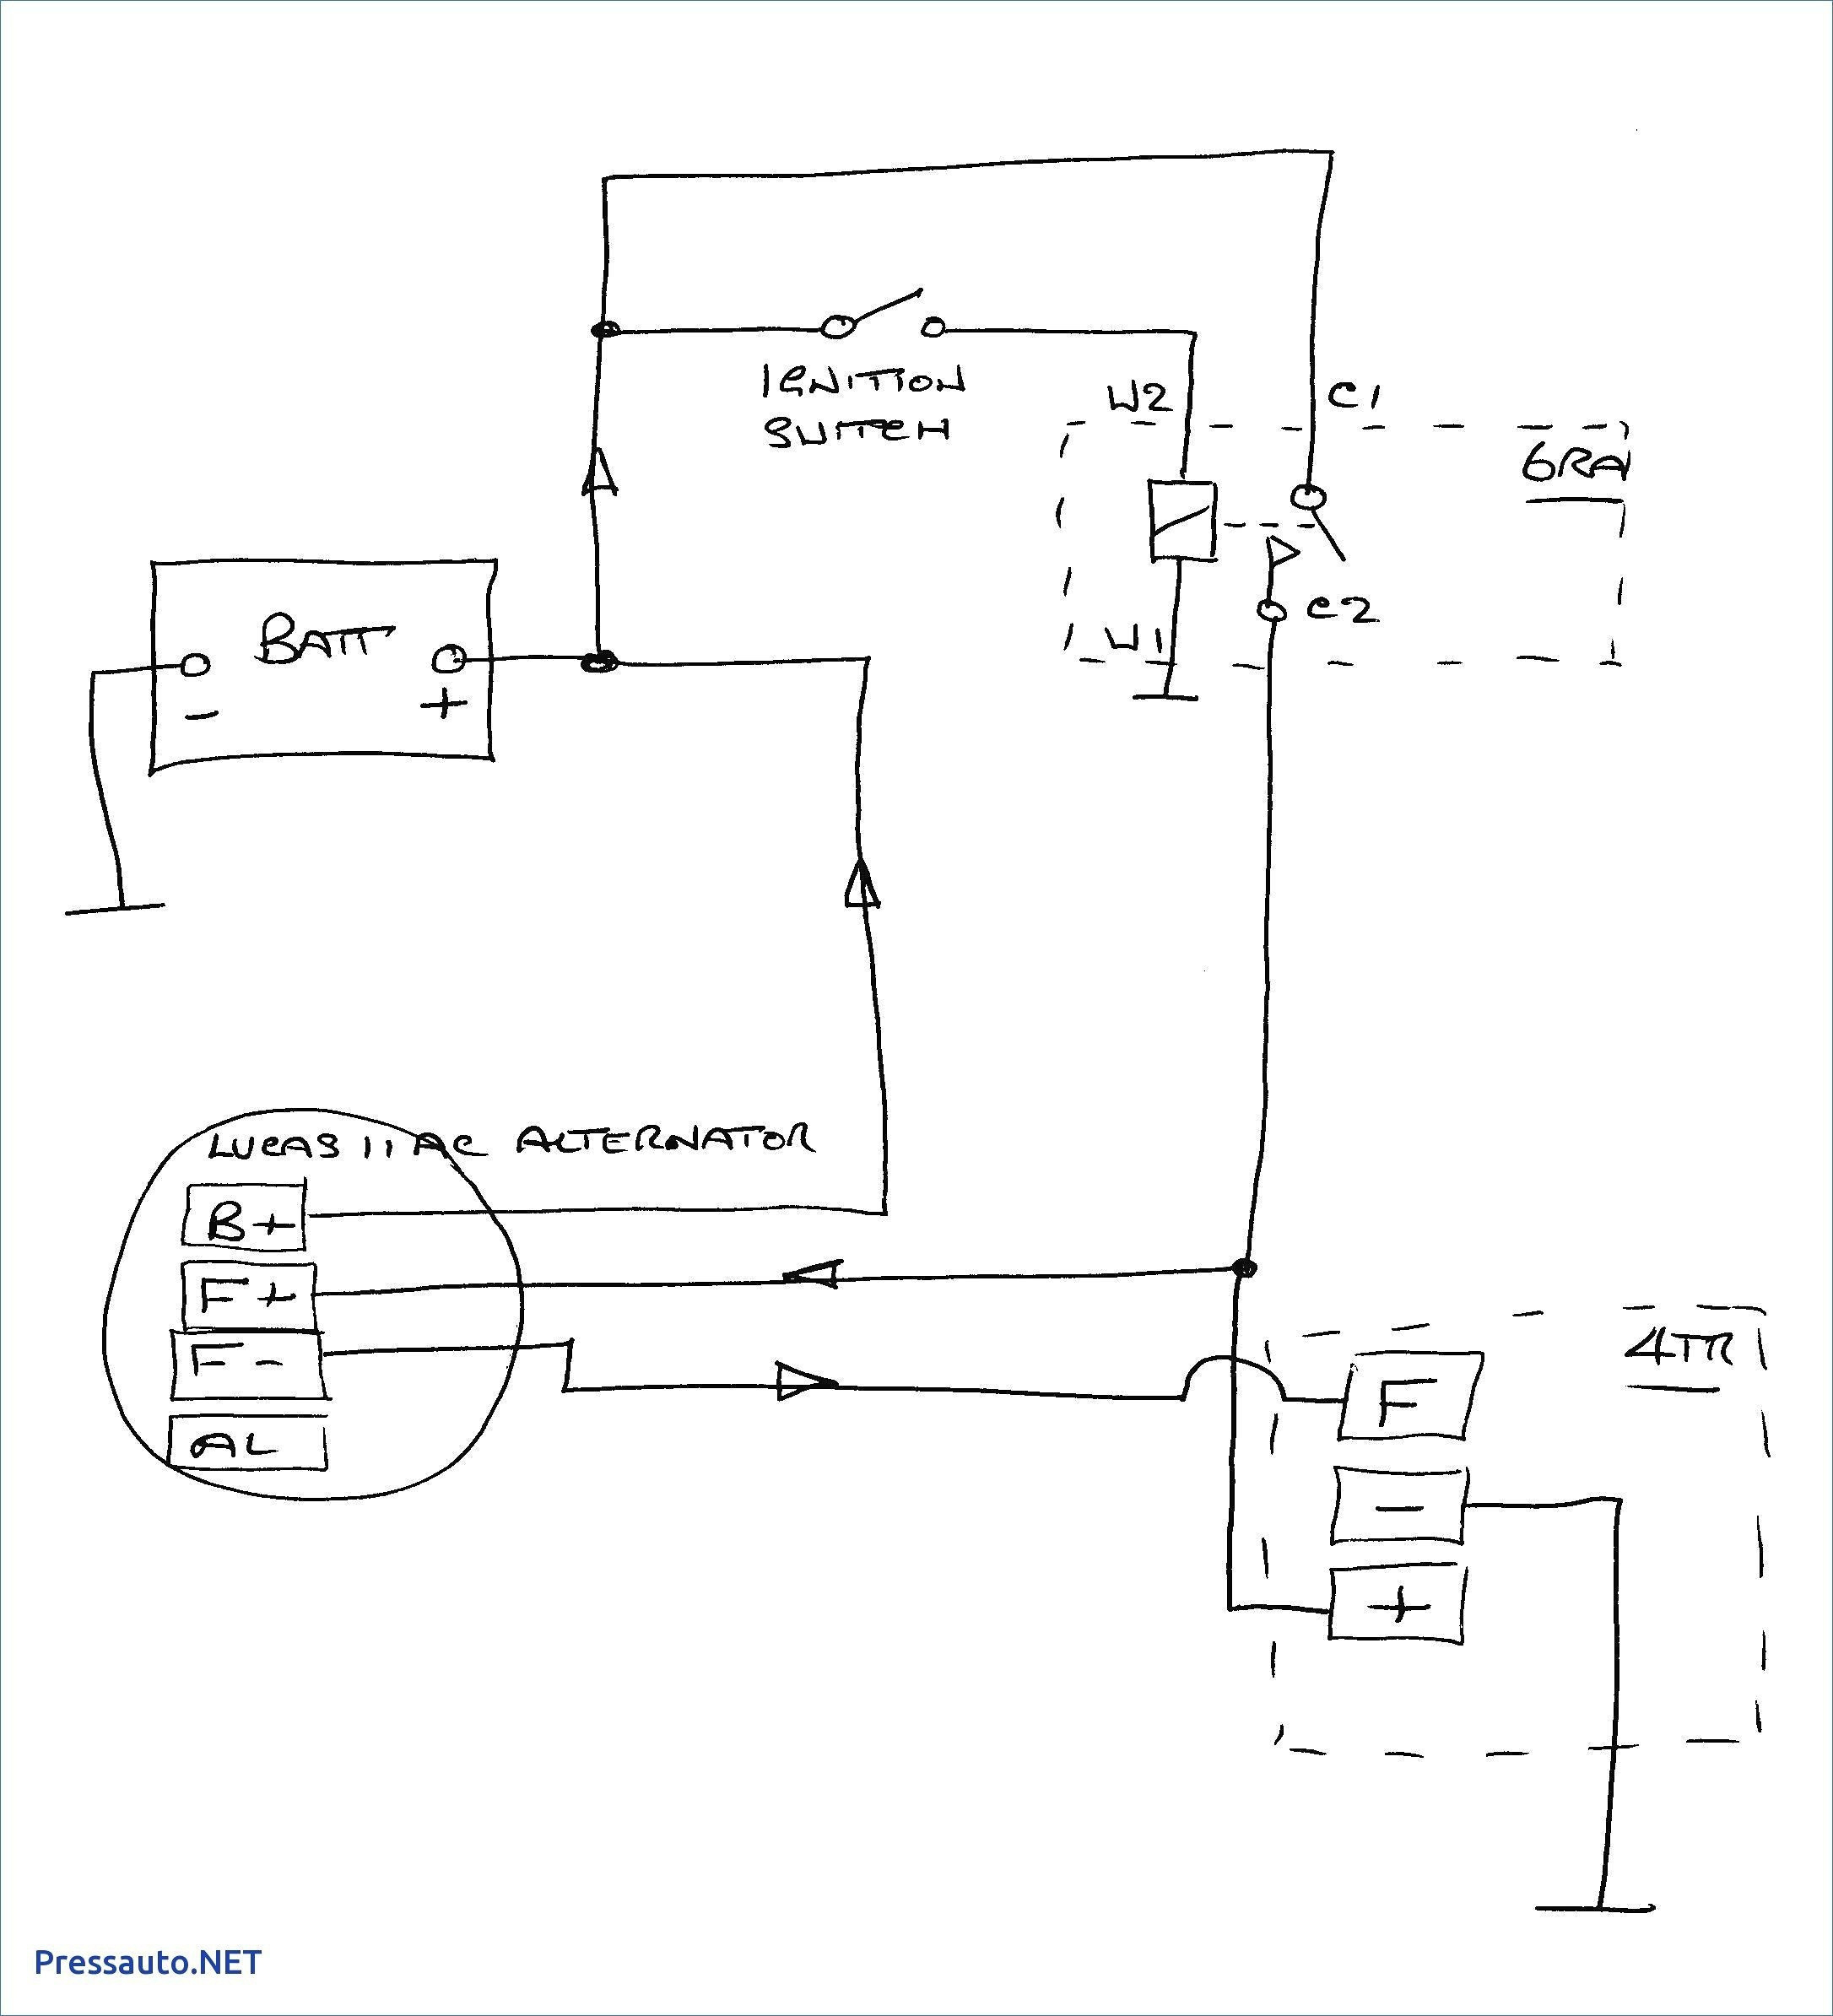 Chevy One Wire Alternator Diagram Electrical Circuit 3 Wire - Ford Alternator Wiring Diagram